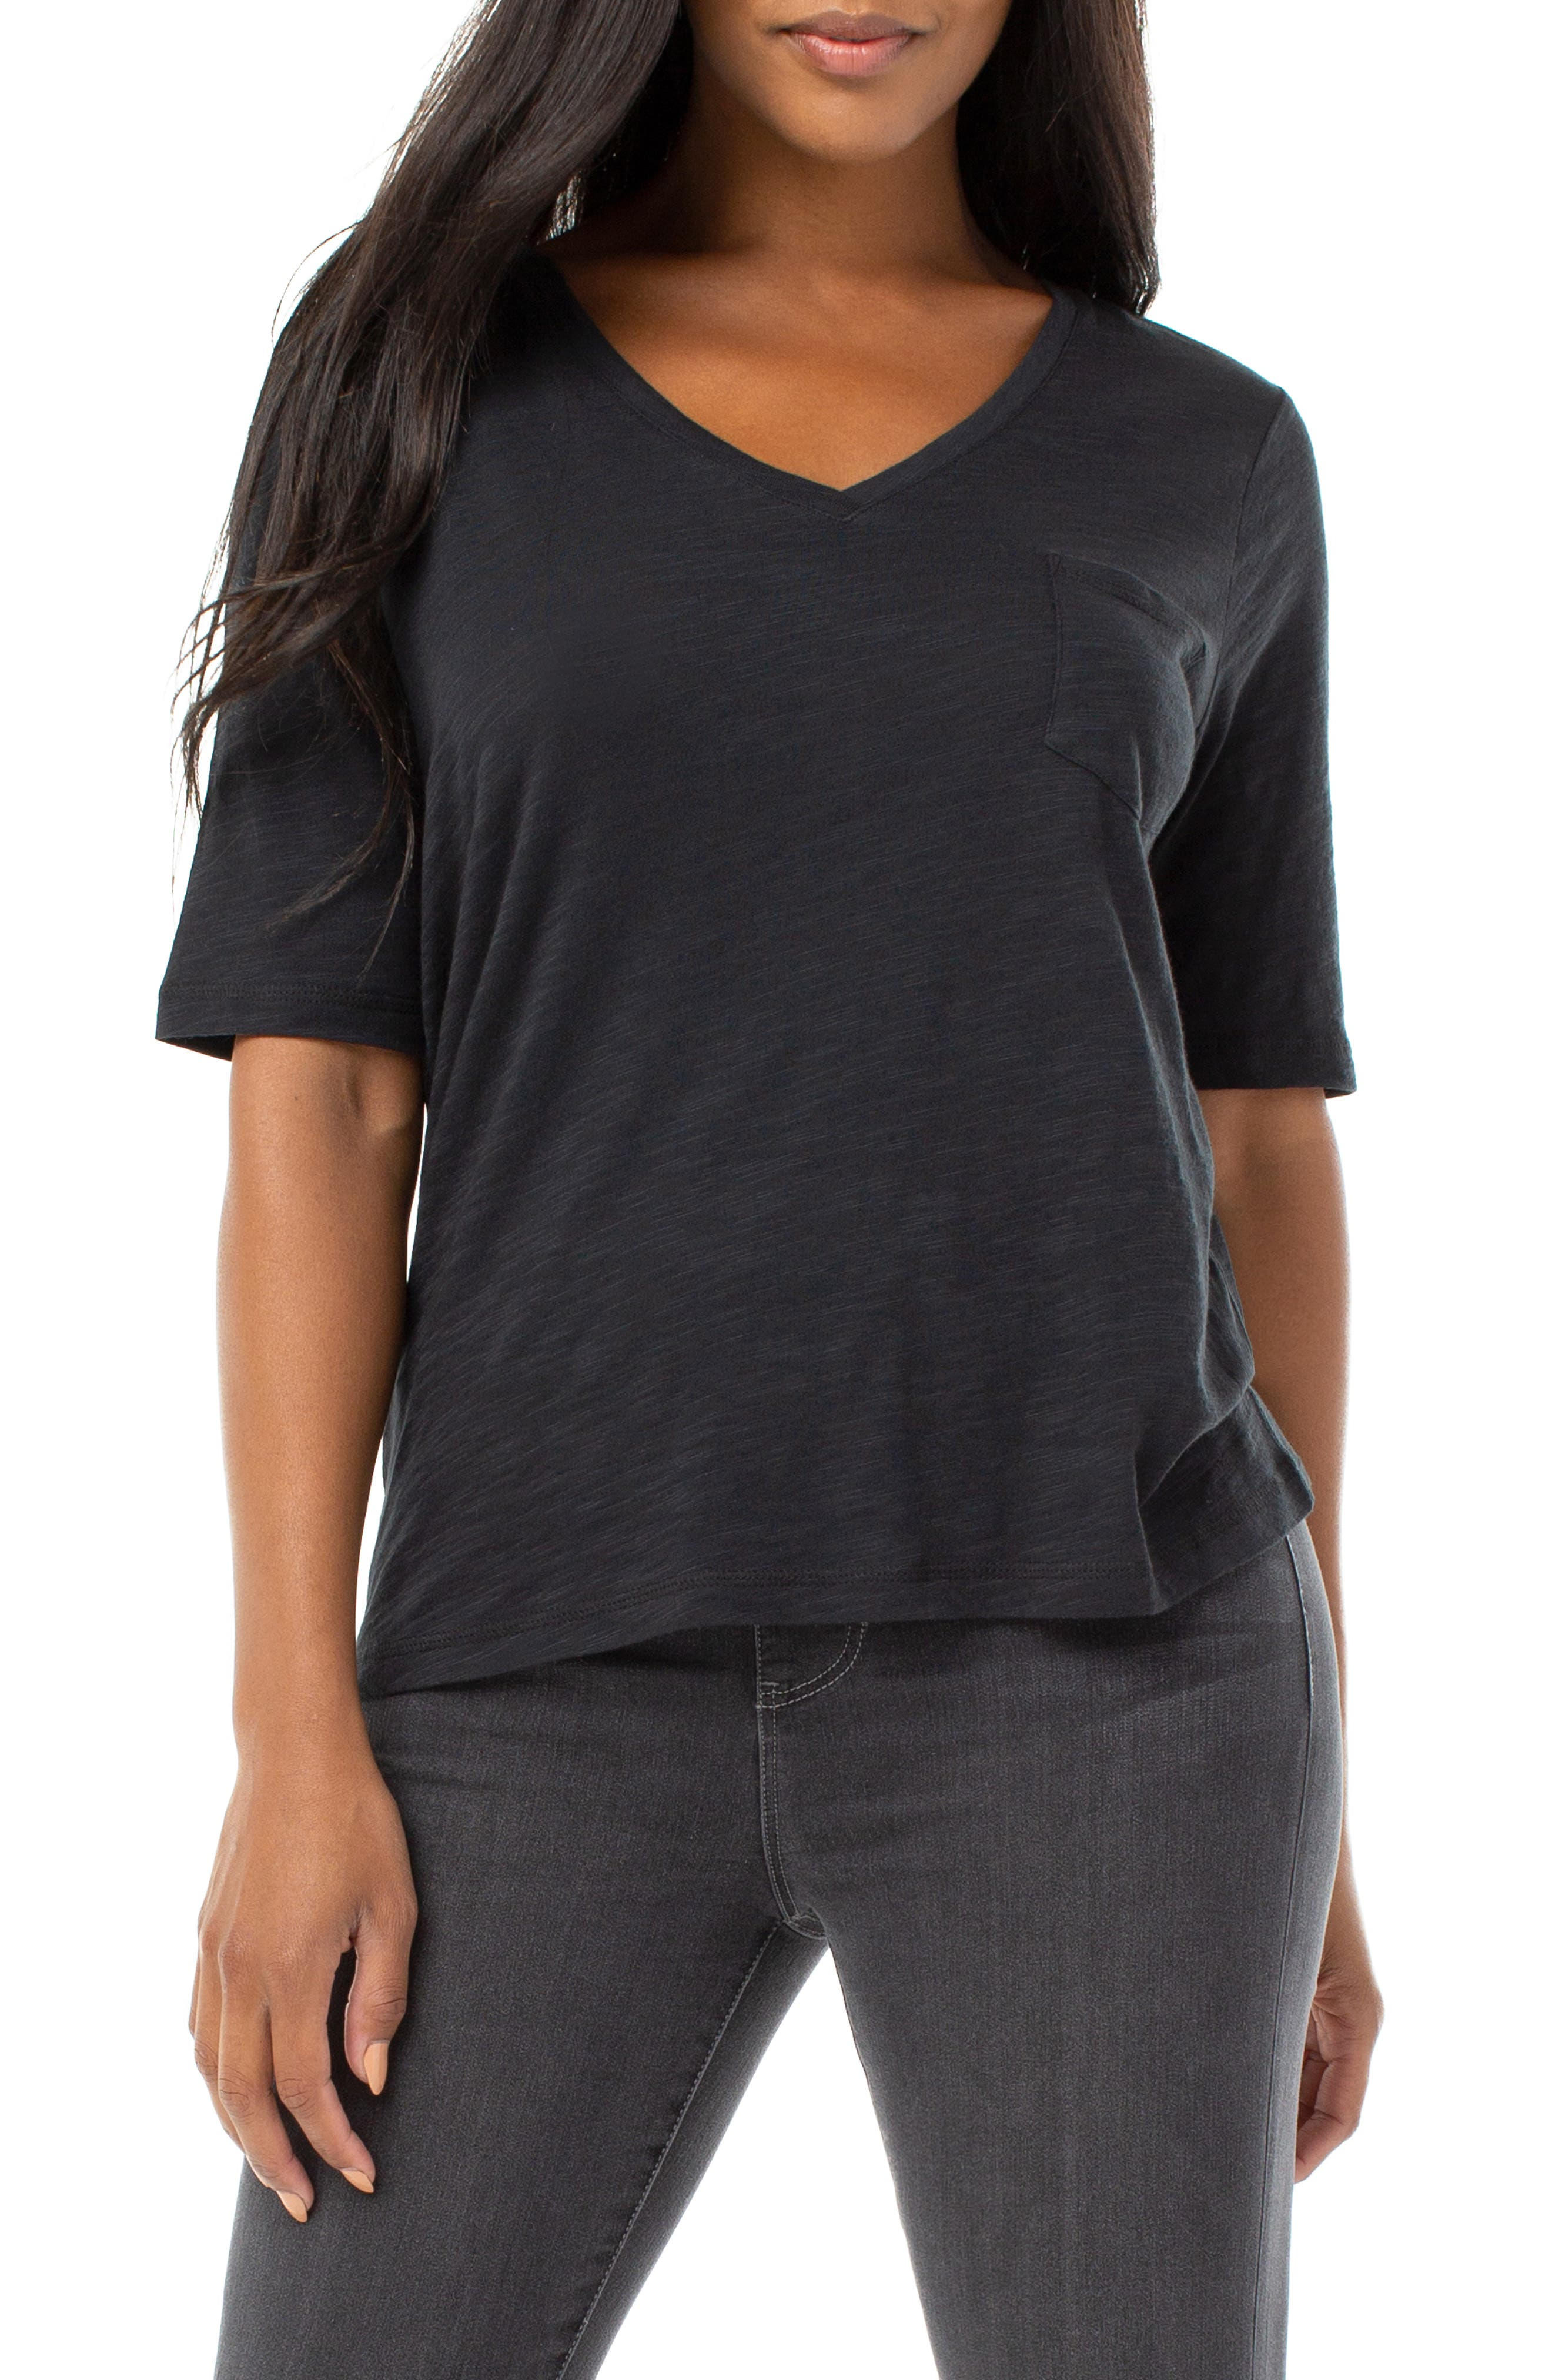 Image of Liverpool Jeans Co 1/2 Sleeve V-Neck Tee with Pocket